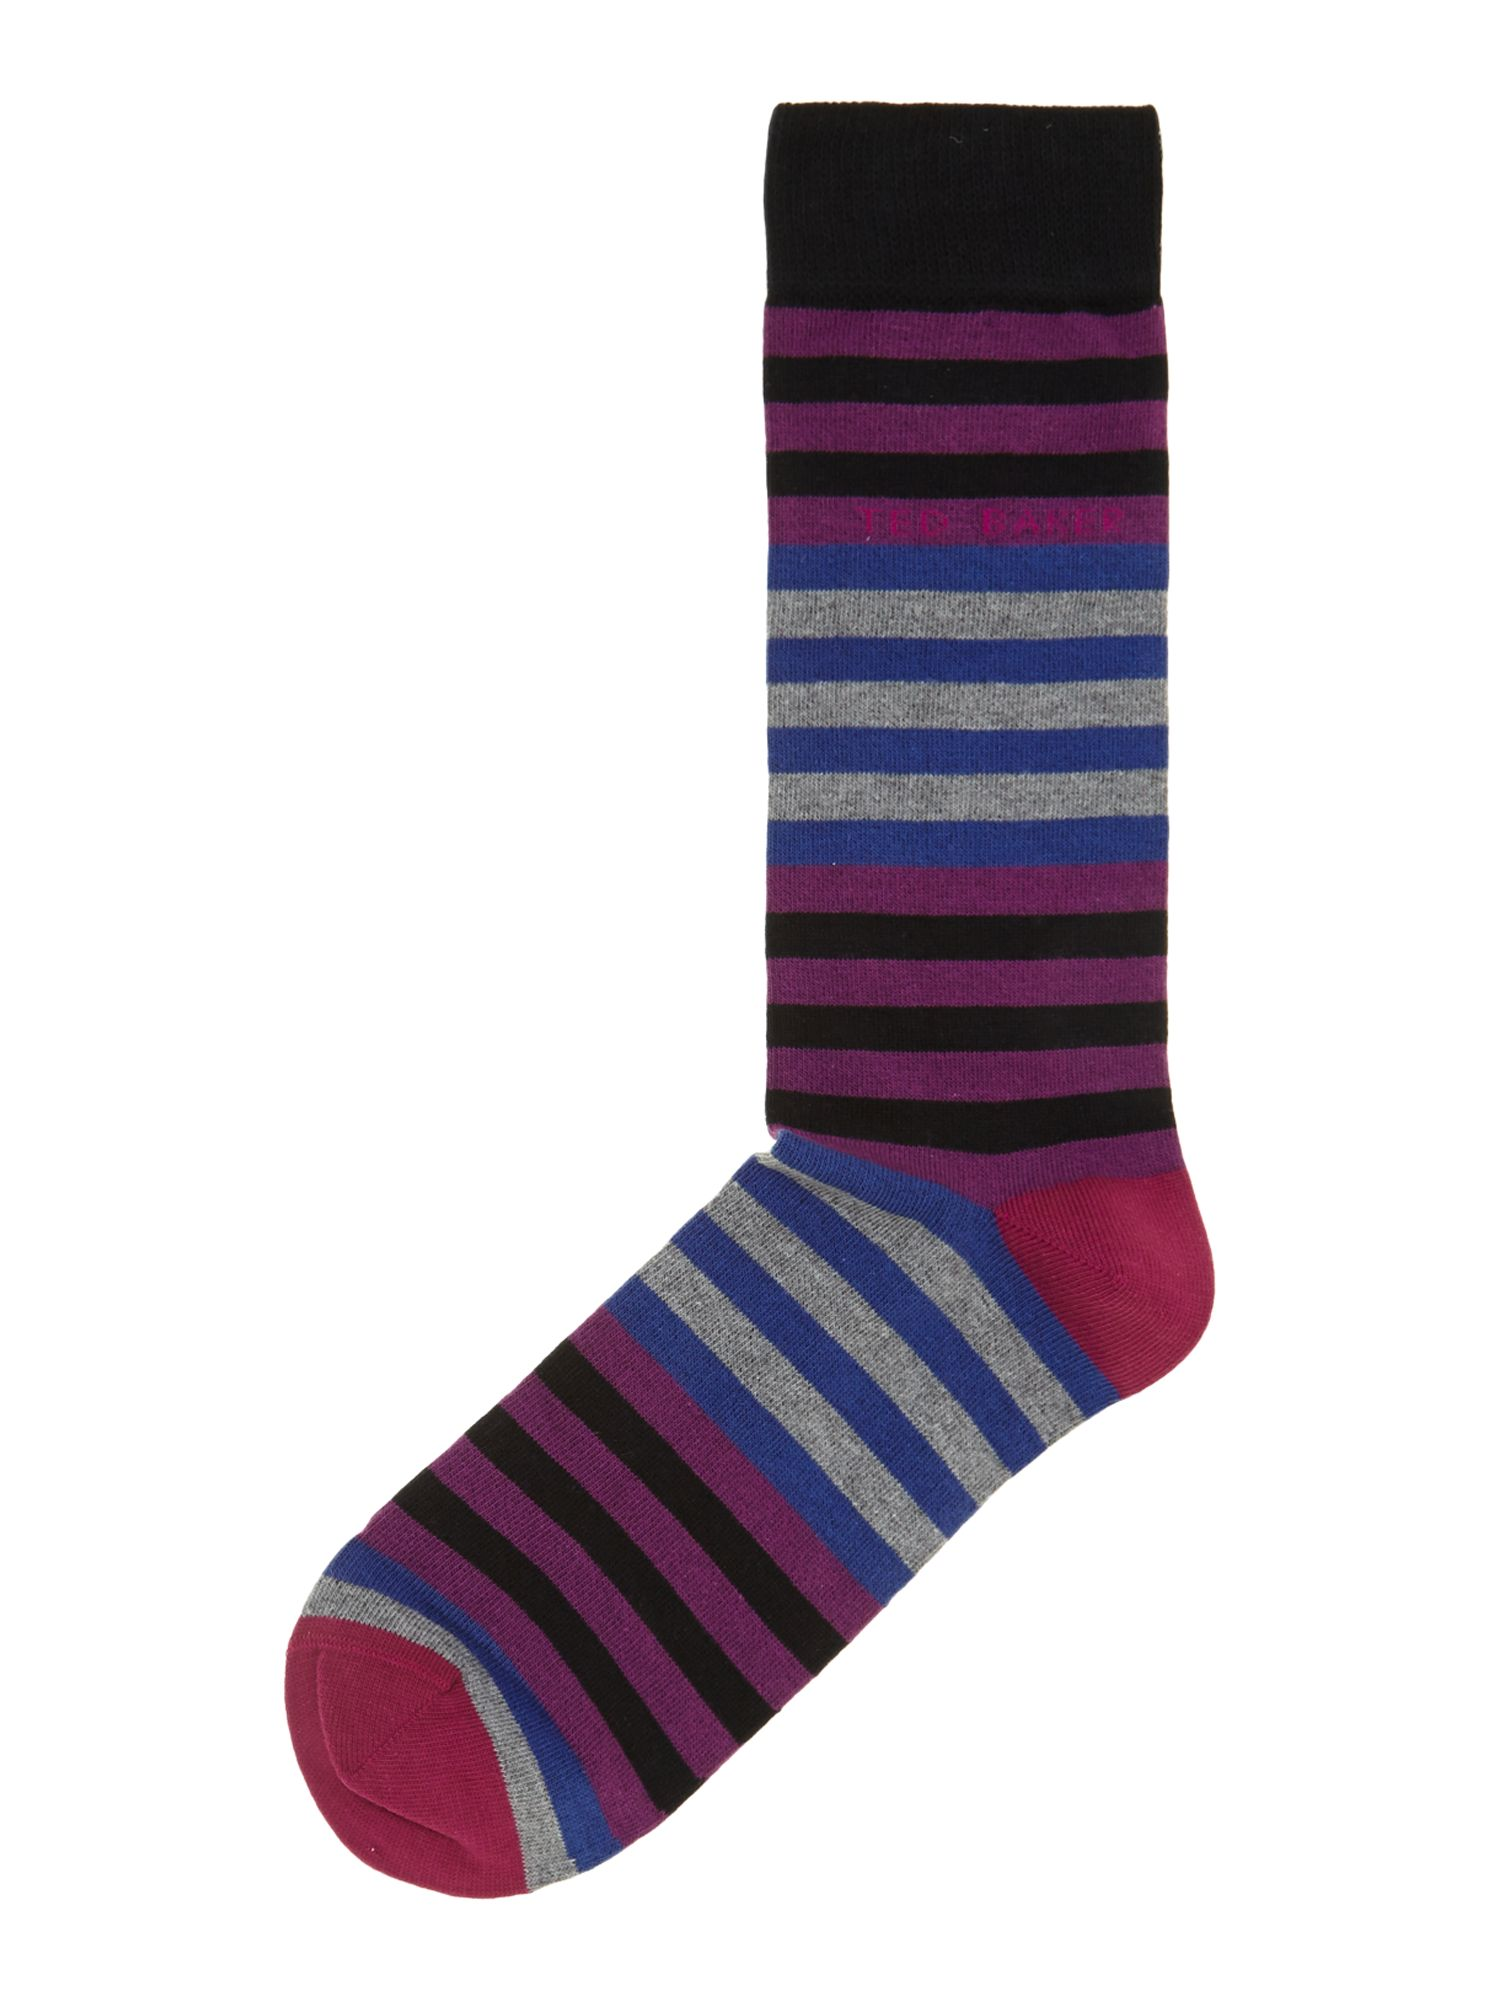 Wide multi stripe socks